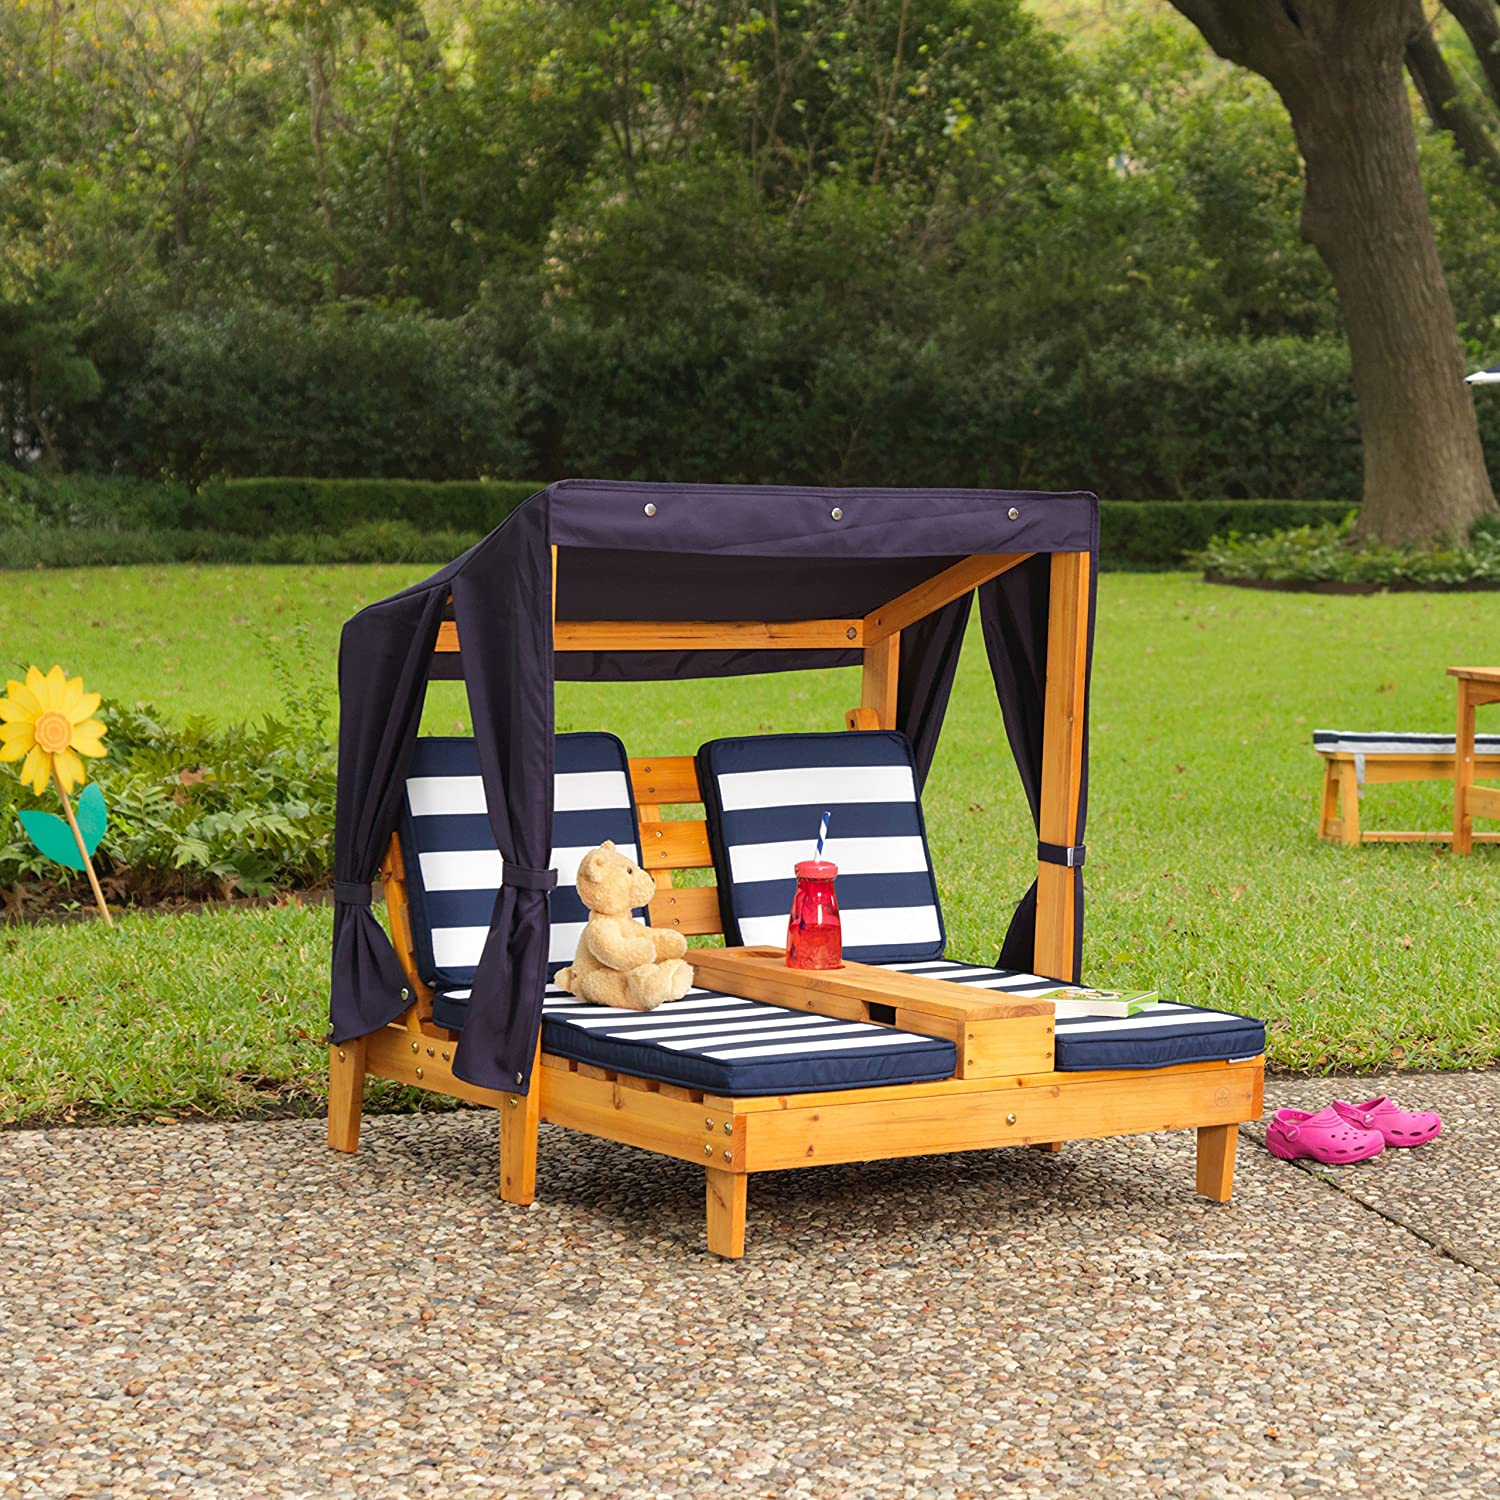 Outdoor Double Chaise Lounge Chair Seat Canopy Kids Children Pool Side Patio